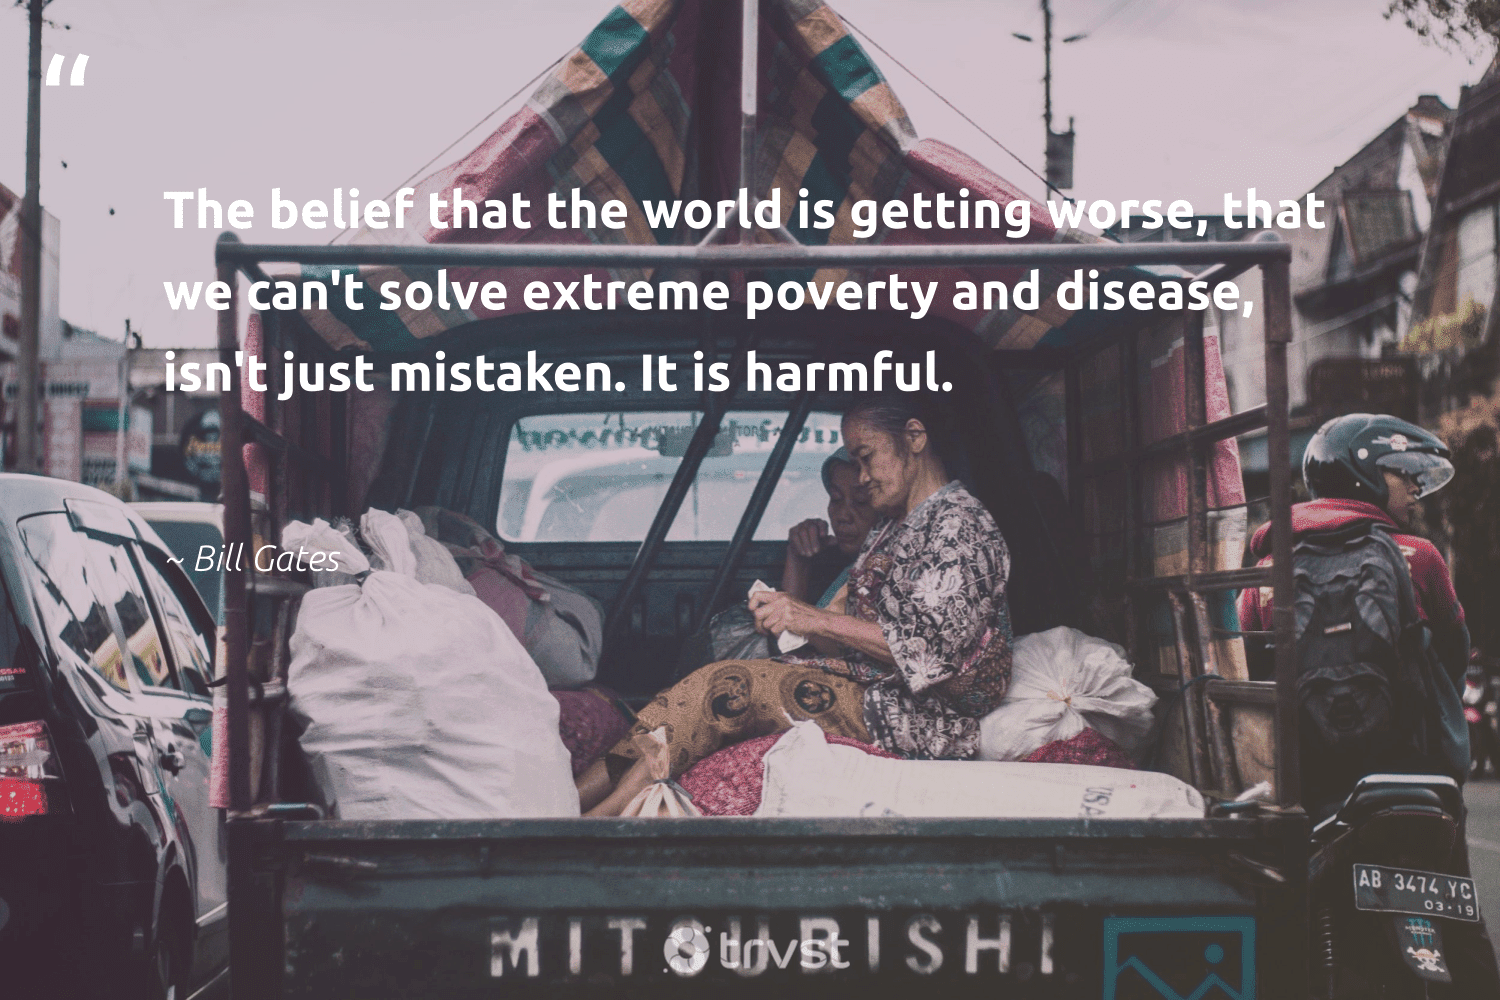 """""""The belief that the world is getting worse, that we can't solve extreme poverty and disease, isn't just mistaken. It is harmful.""""  - Bill Gates #trvst #quotes #poverty #endpoverty #sustainablefutures #makeadifference #bethechange #equalrights #inclusion #dosomething #equalopportunity #weareallone"""